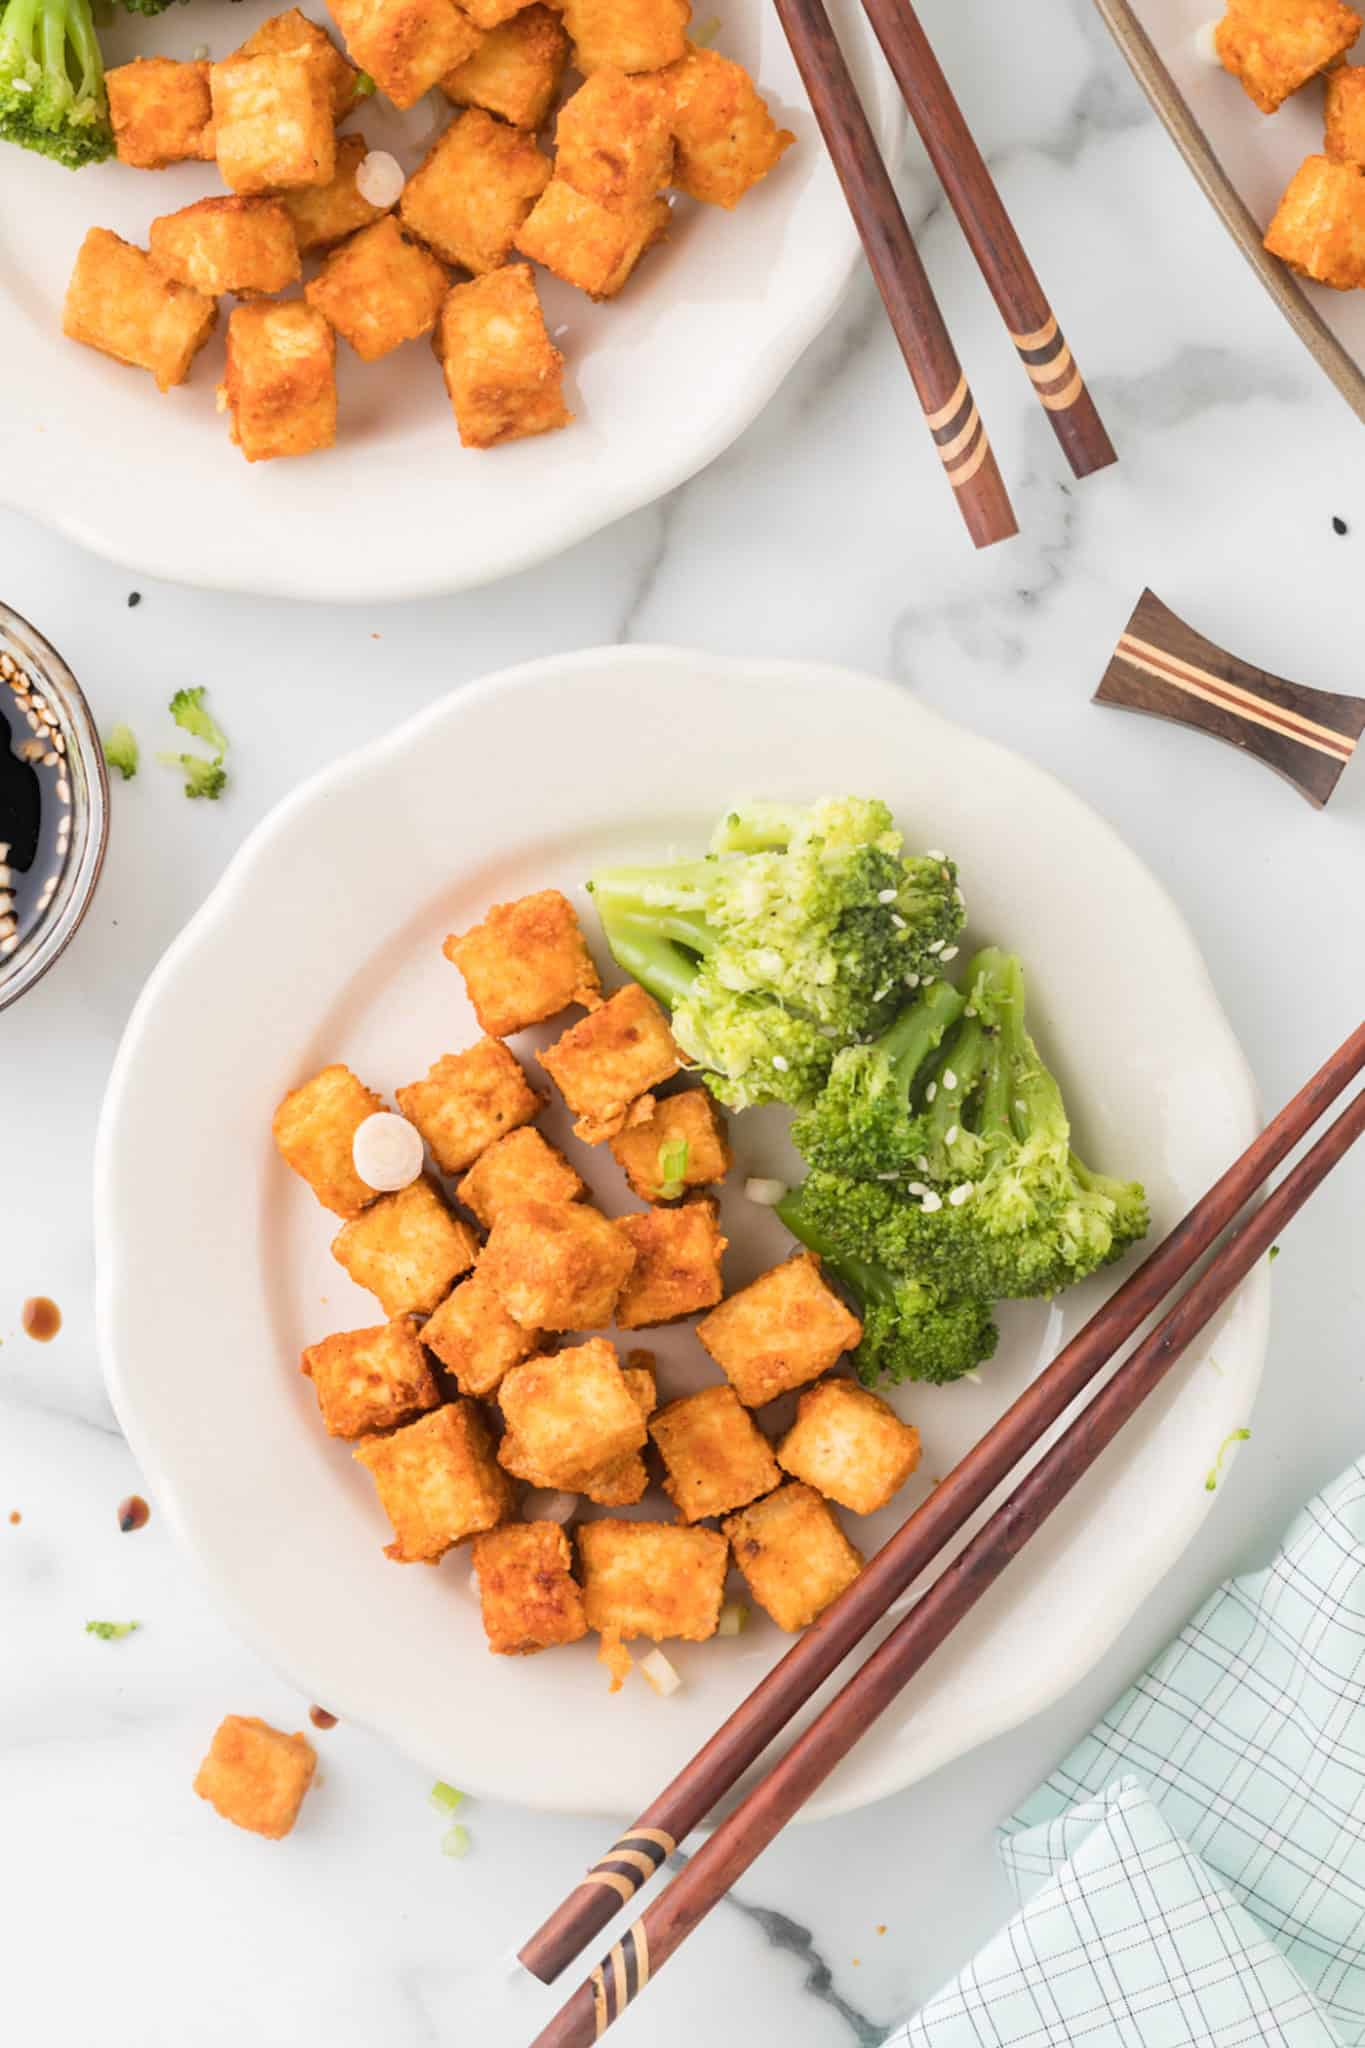 two plates of tofu served with broccoli